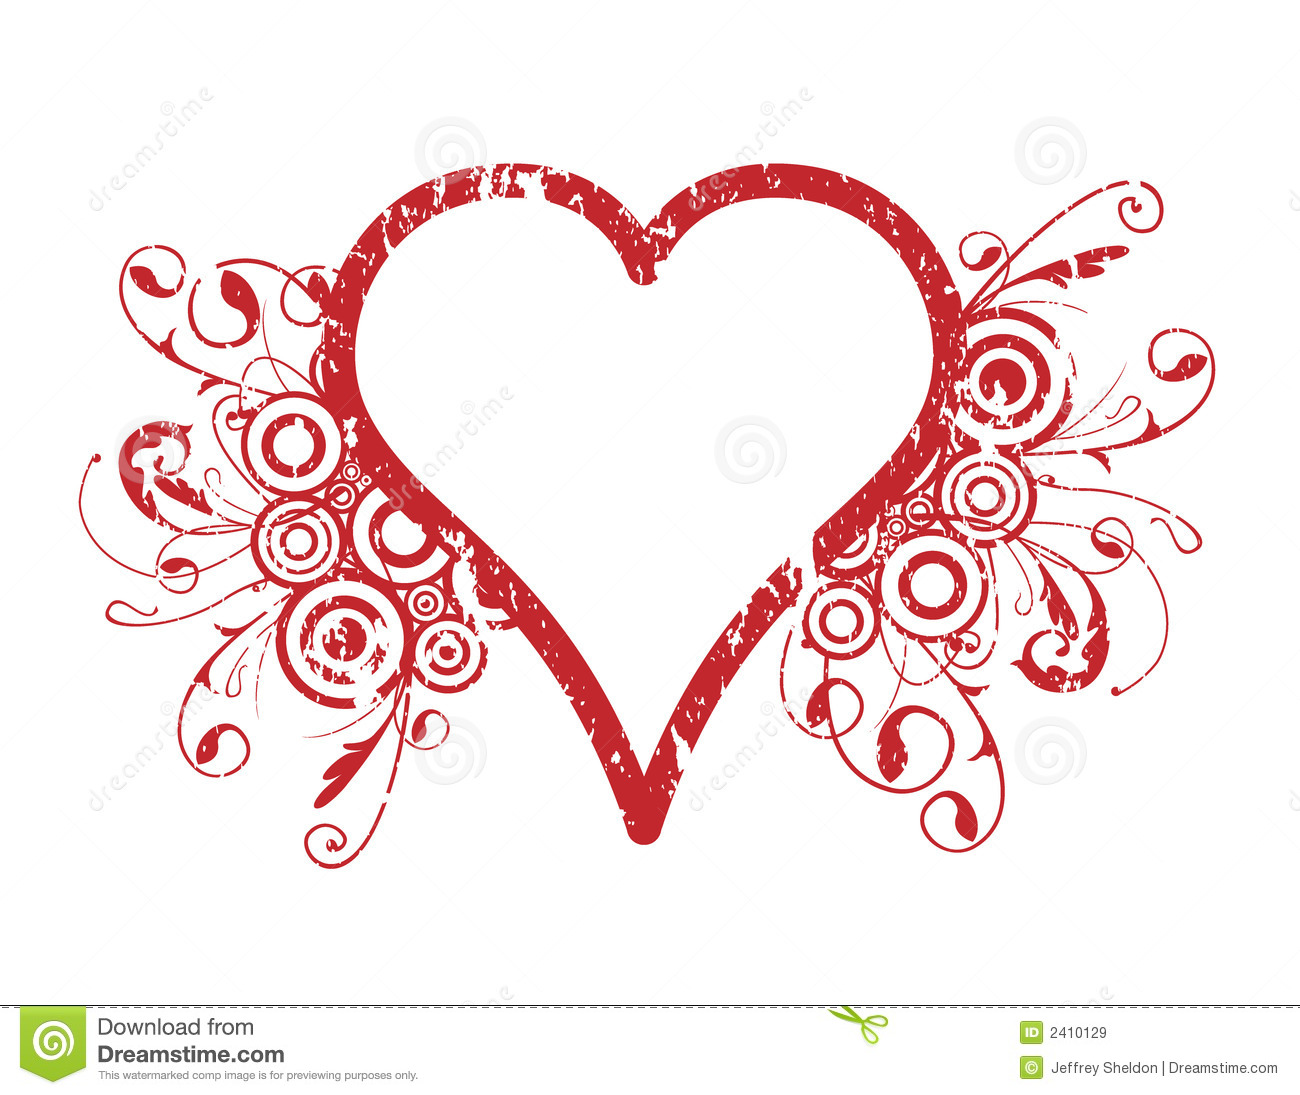 Heart design stock vector image of curving circles for Heartbeat design